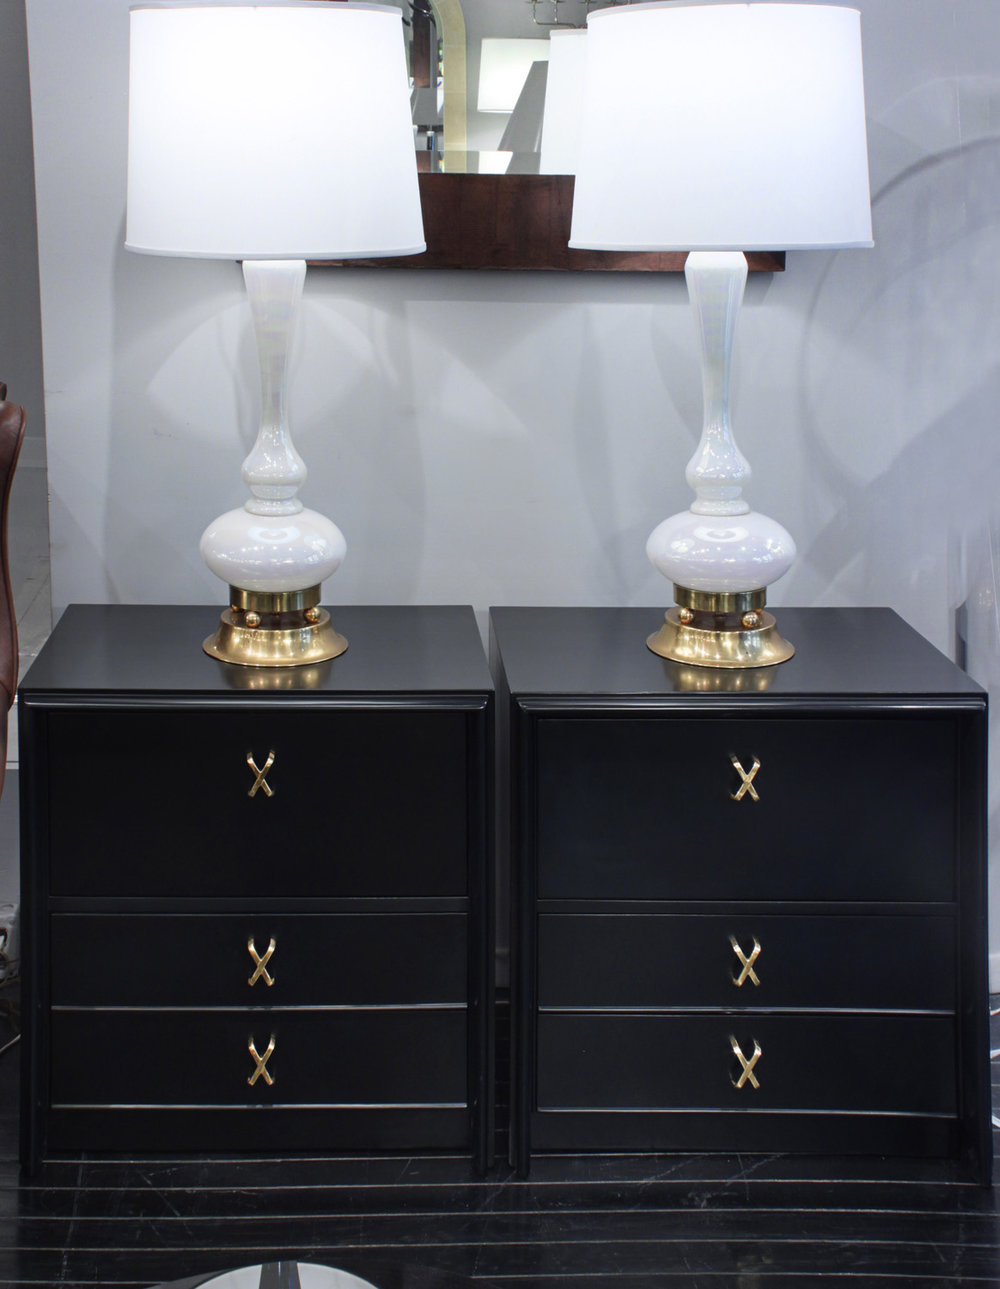 Frankl 95 Blk Satin nightstands70 detail7 hires.jpg